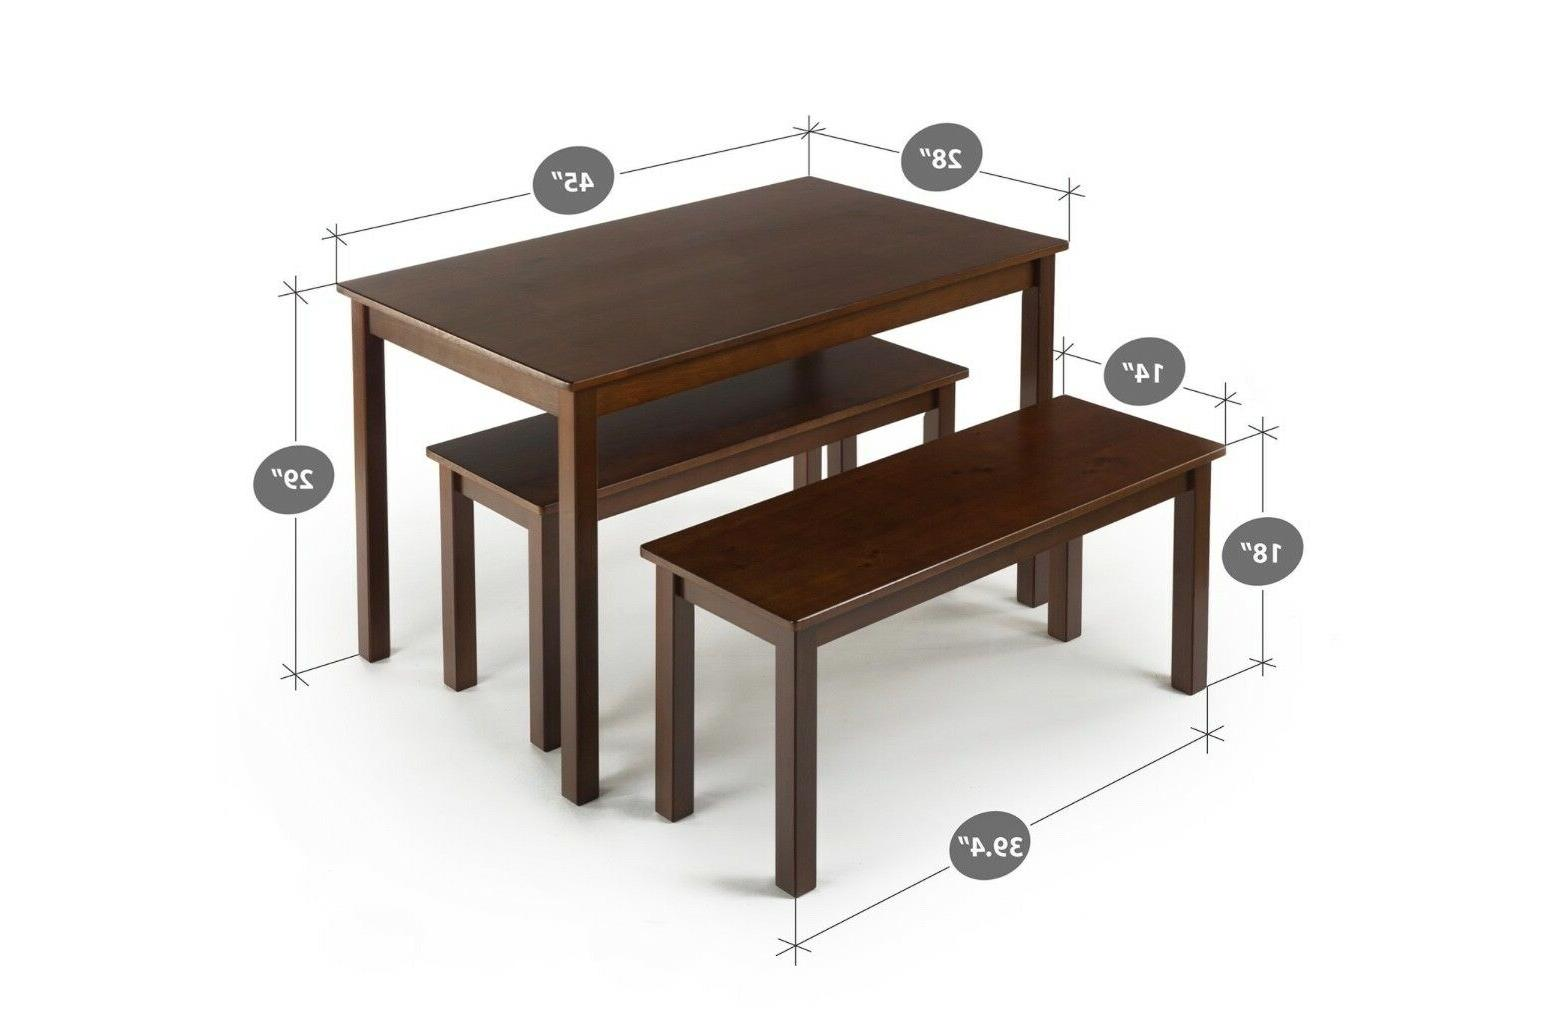 Zinus Espresso Wood Dining Table with Benches / Set